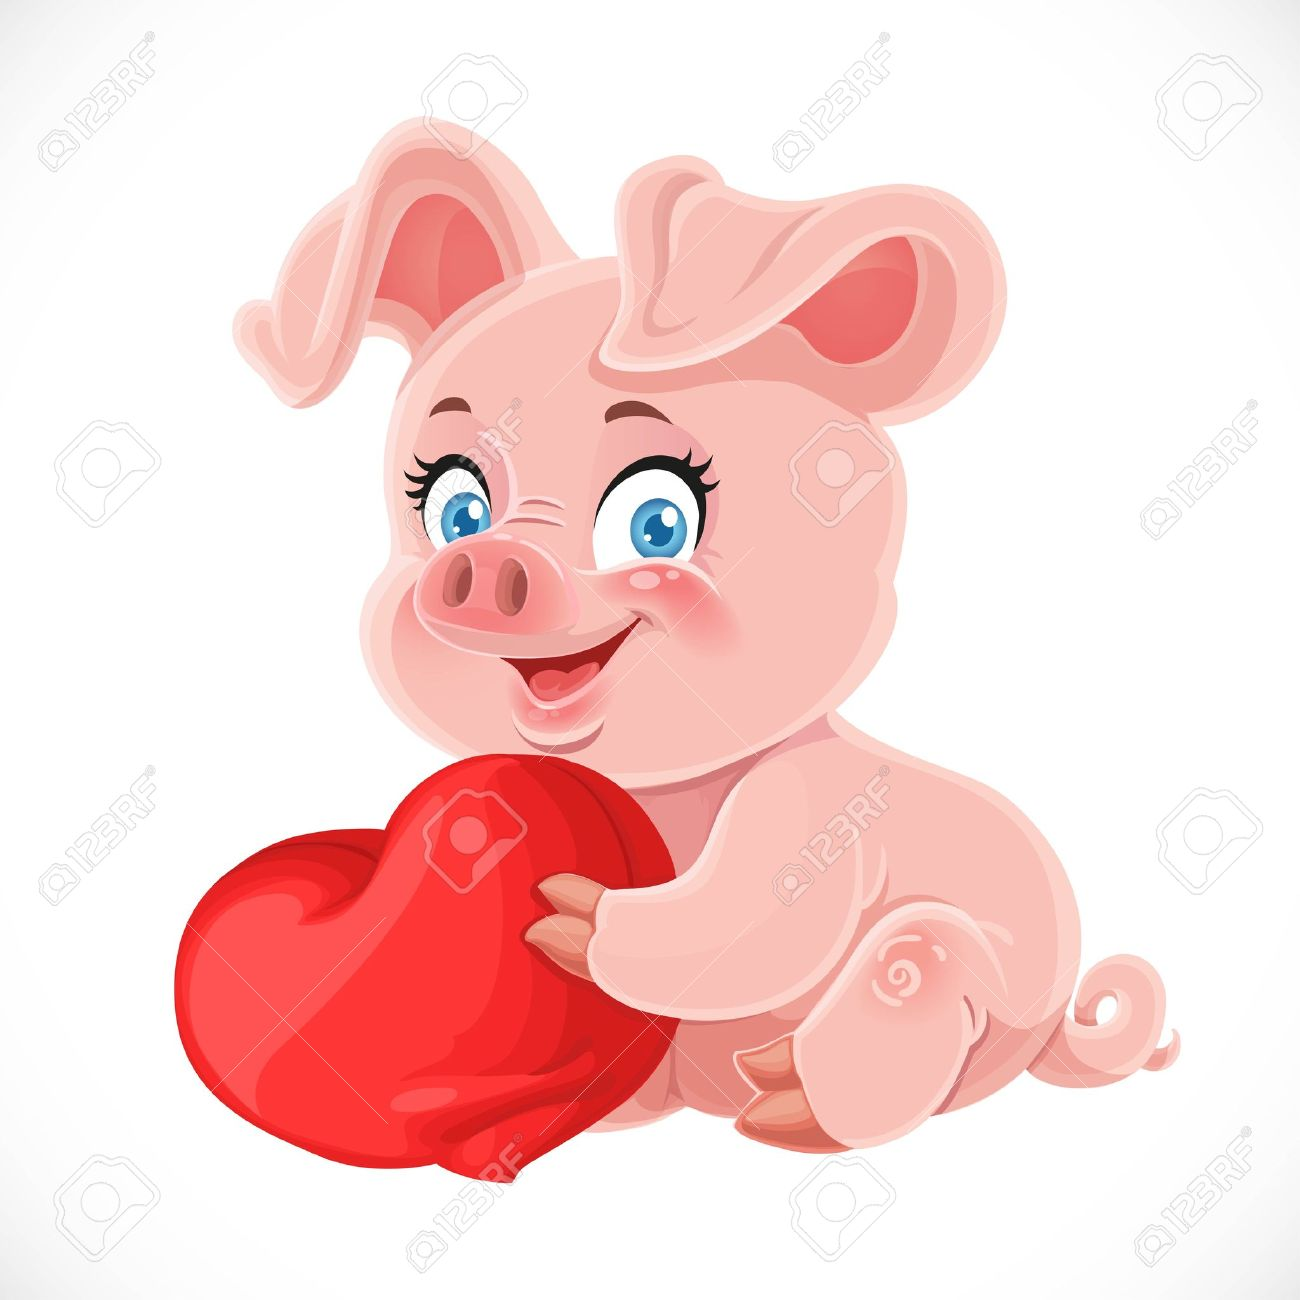 Cute Cartoon Happy Baby Pig Hugging A Soft Red Pillow Heart Isolated ... for Pig Heart Cartoon  270bof